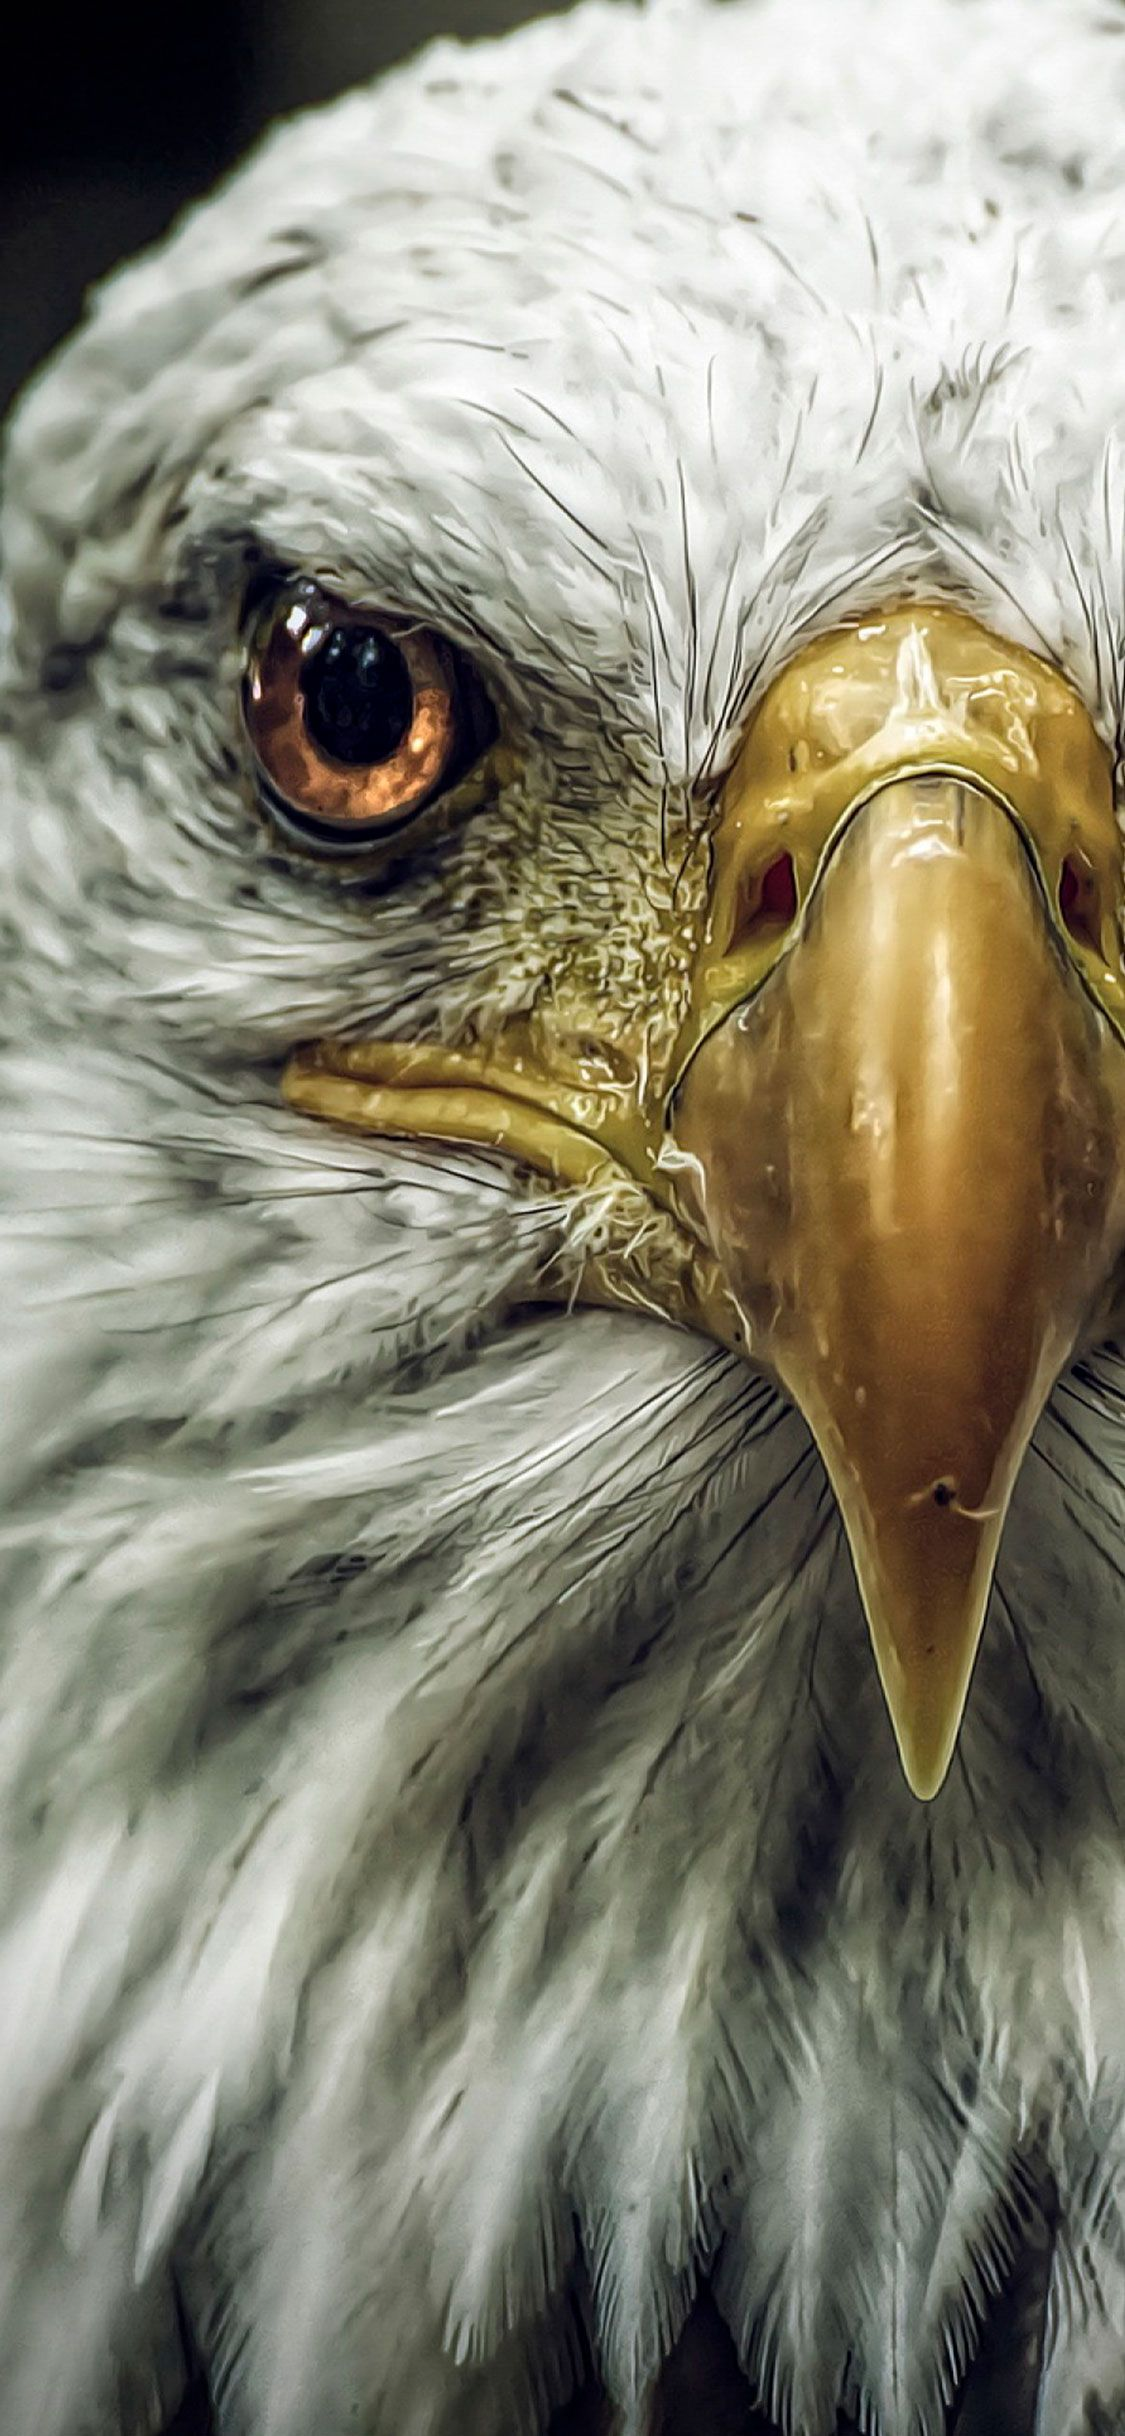 Eagle Iphone Wallpapers Top Free Eagle Iphone Backgrounds Wallpaperaccess